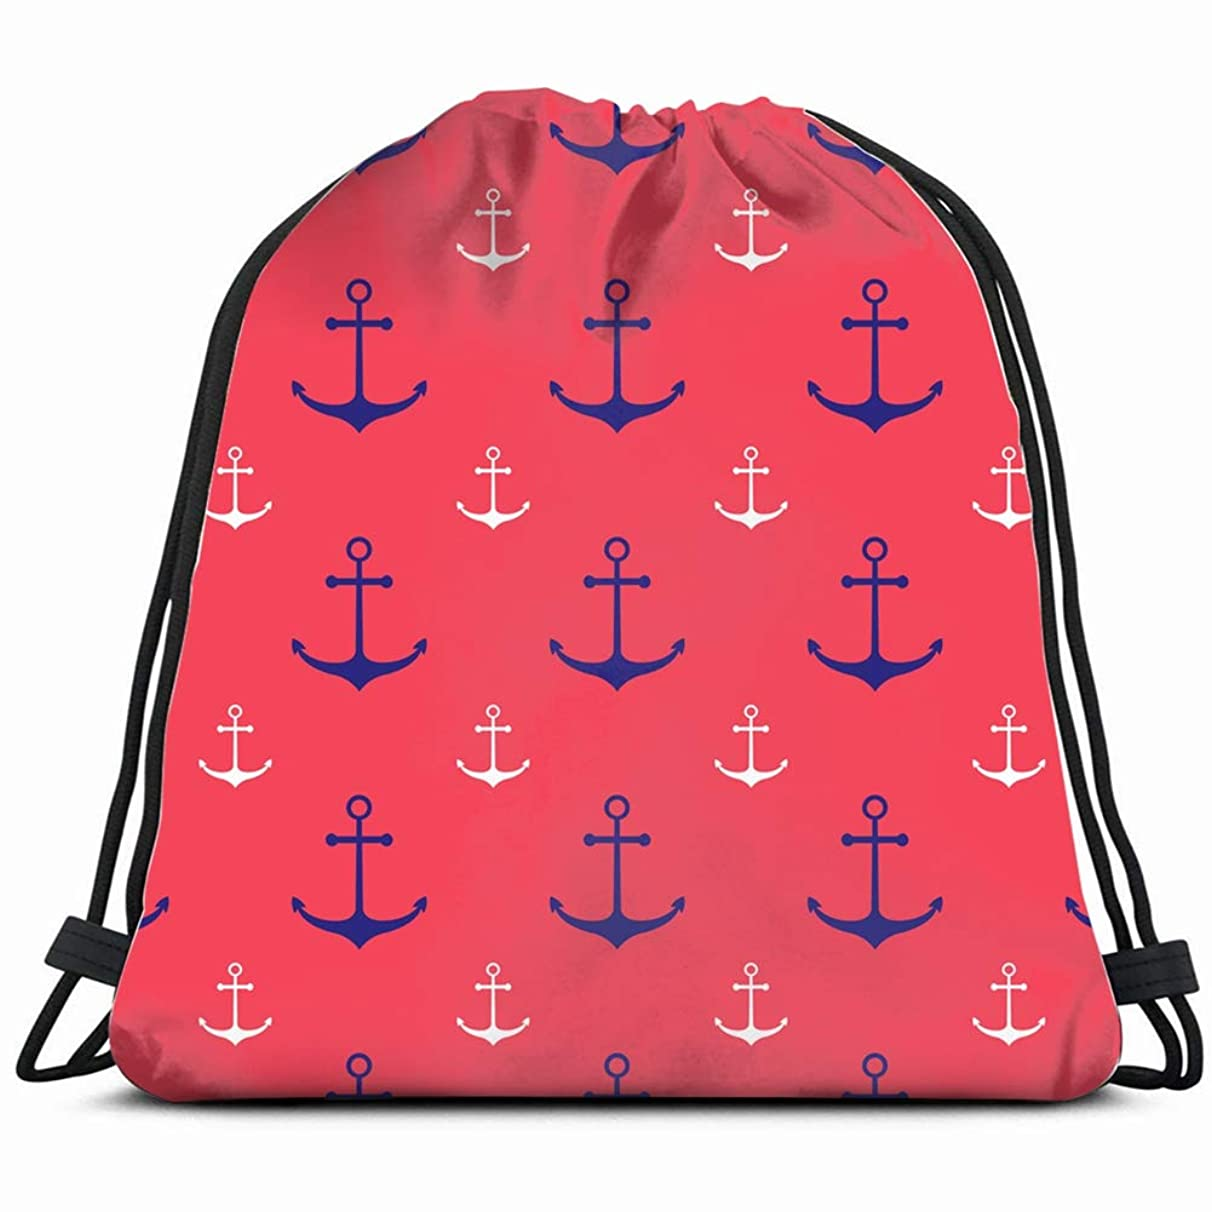 nautical scattered blue white boy Drawstring Backpack Gym Sack Lightweight Bag Water Resistant Gym Backpack for Women&Men for Sports,Travelling,Hiking,Camping,Shopping Yoga